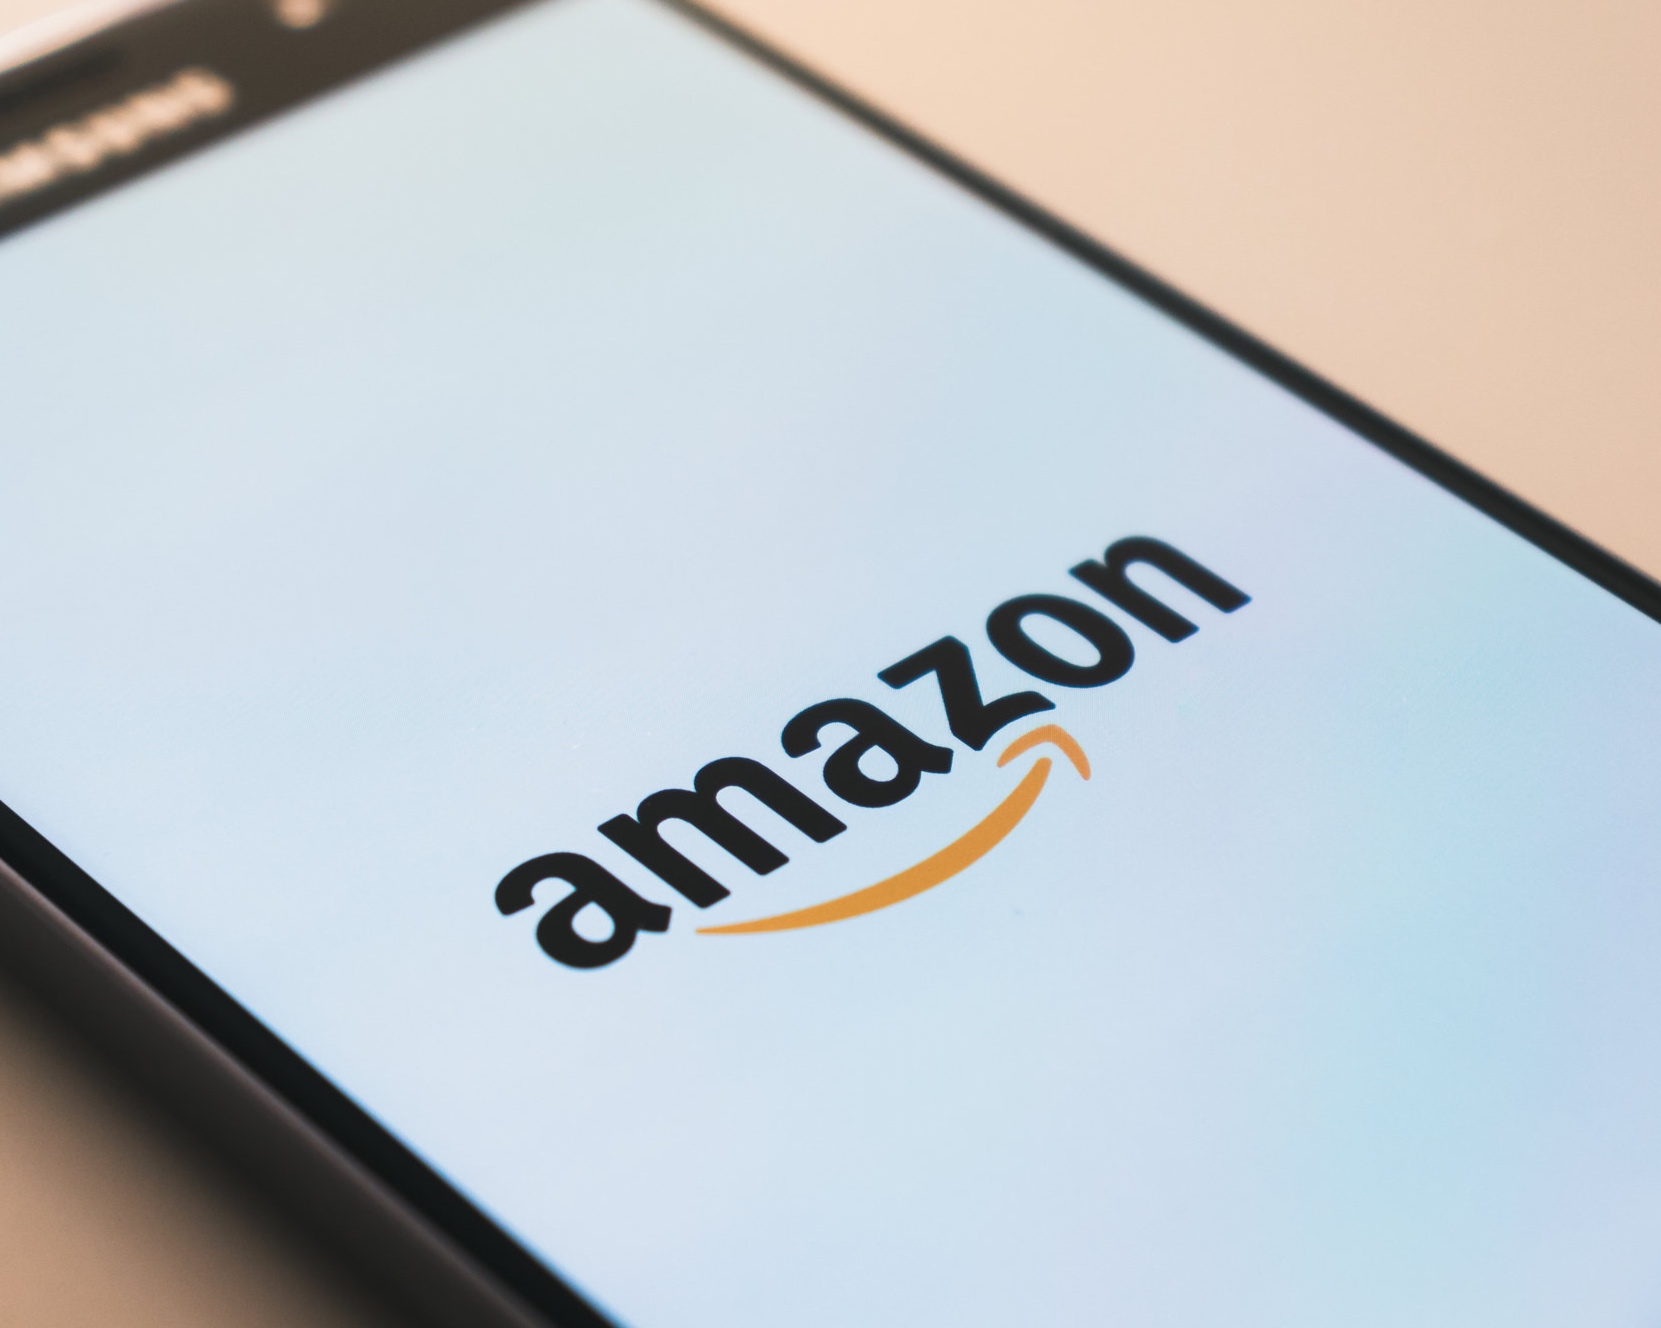 Don't lose Amazon sales to your competitors. - With thousands of Amazon sellers, it is easy to fall behind the competition. Our Amazon Seller strategy enables brands to thrive on the fast-paced Amazon marketplace.